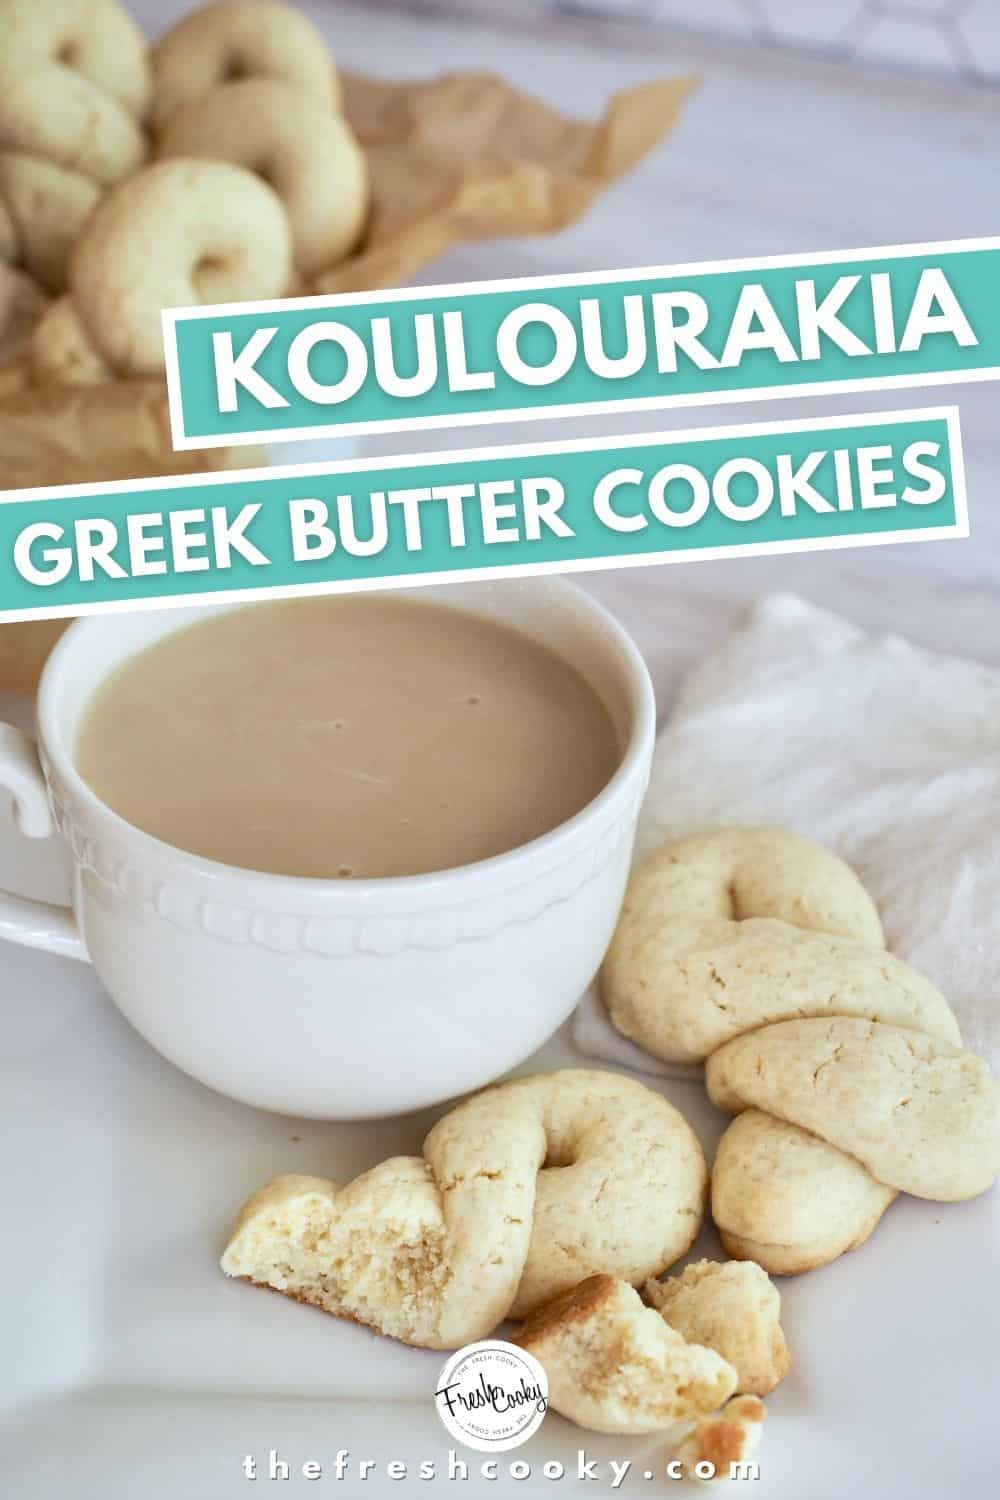 Greek Butter Cookies also known as Koulourakia are an easy to make  butter sugar cookie shaped into traditional twists, crescents and other forms. A great cookie to make with kids. Perfect for holiday gatherings, Christmas cookie exchanges and Easter celebrations. #thefreshcooky #koulourakia #buttercookies via @thefreshcooky